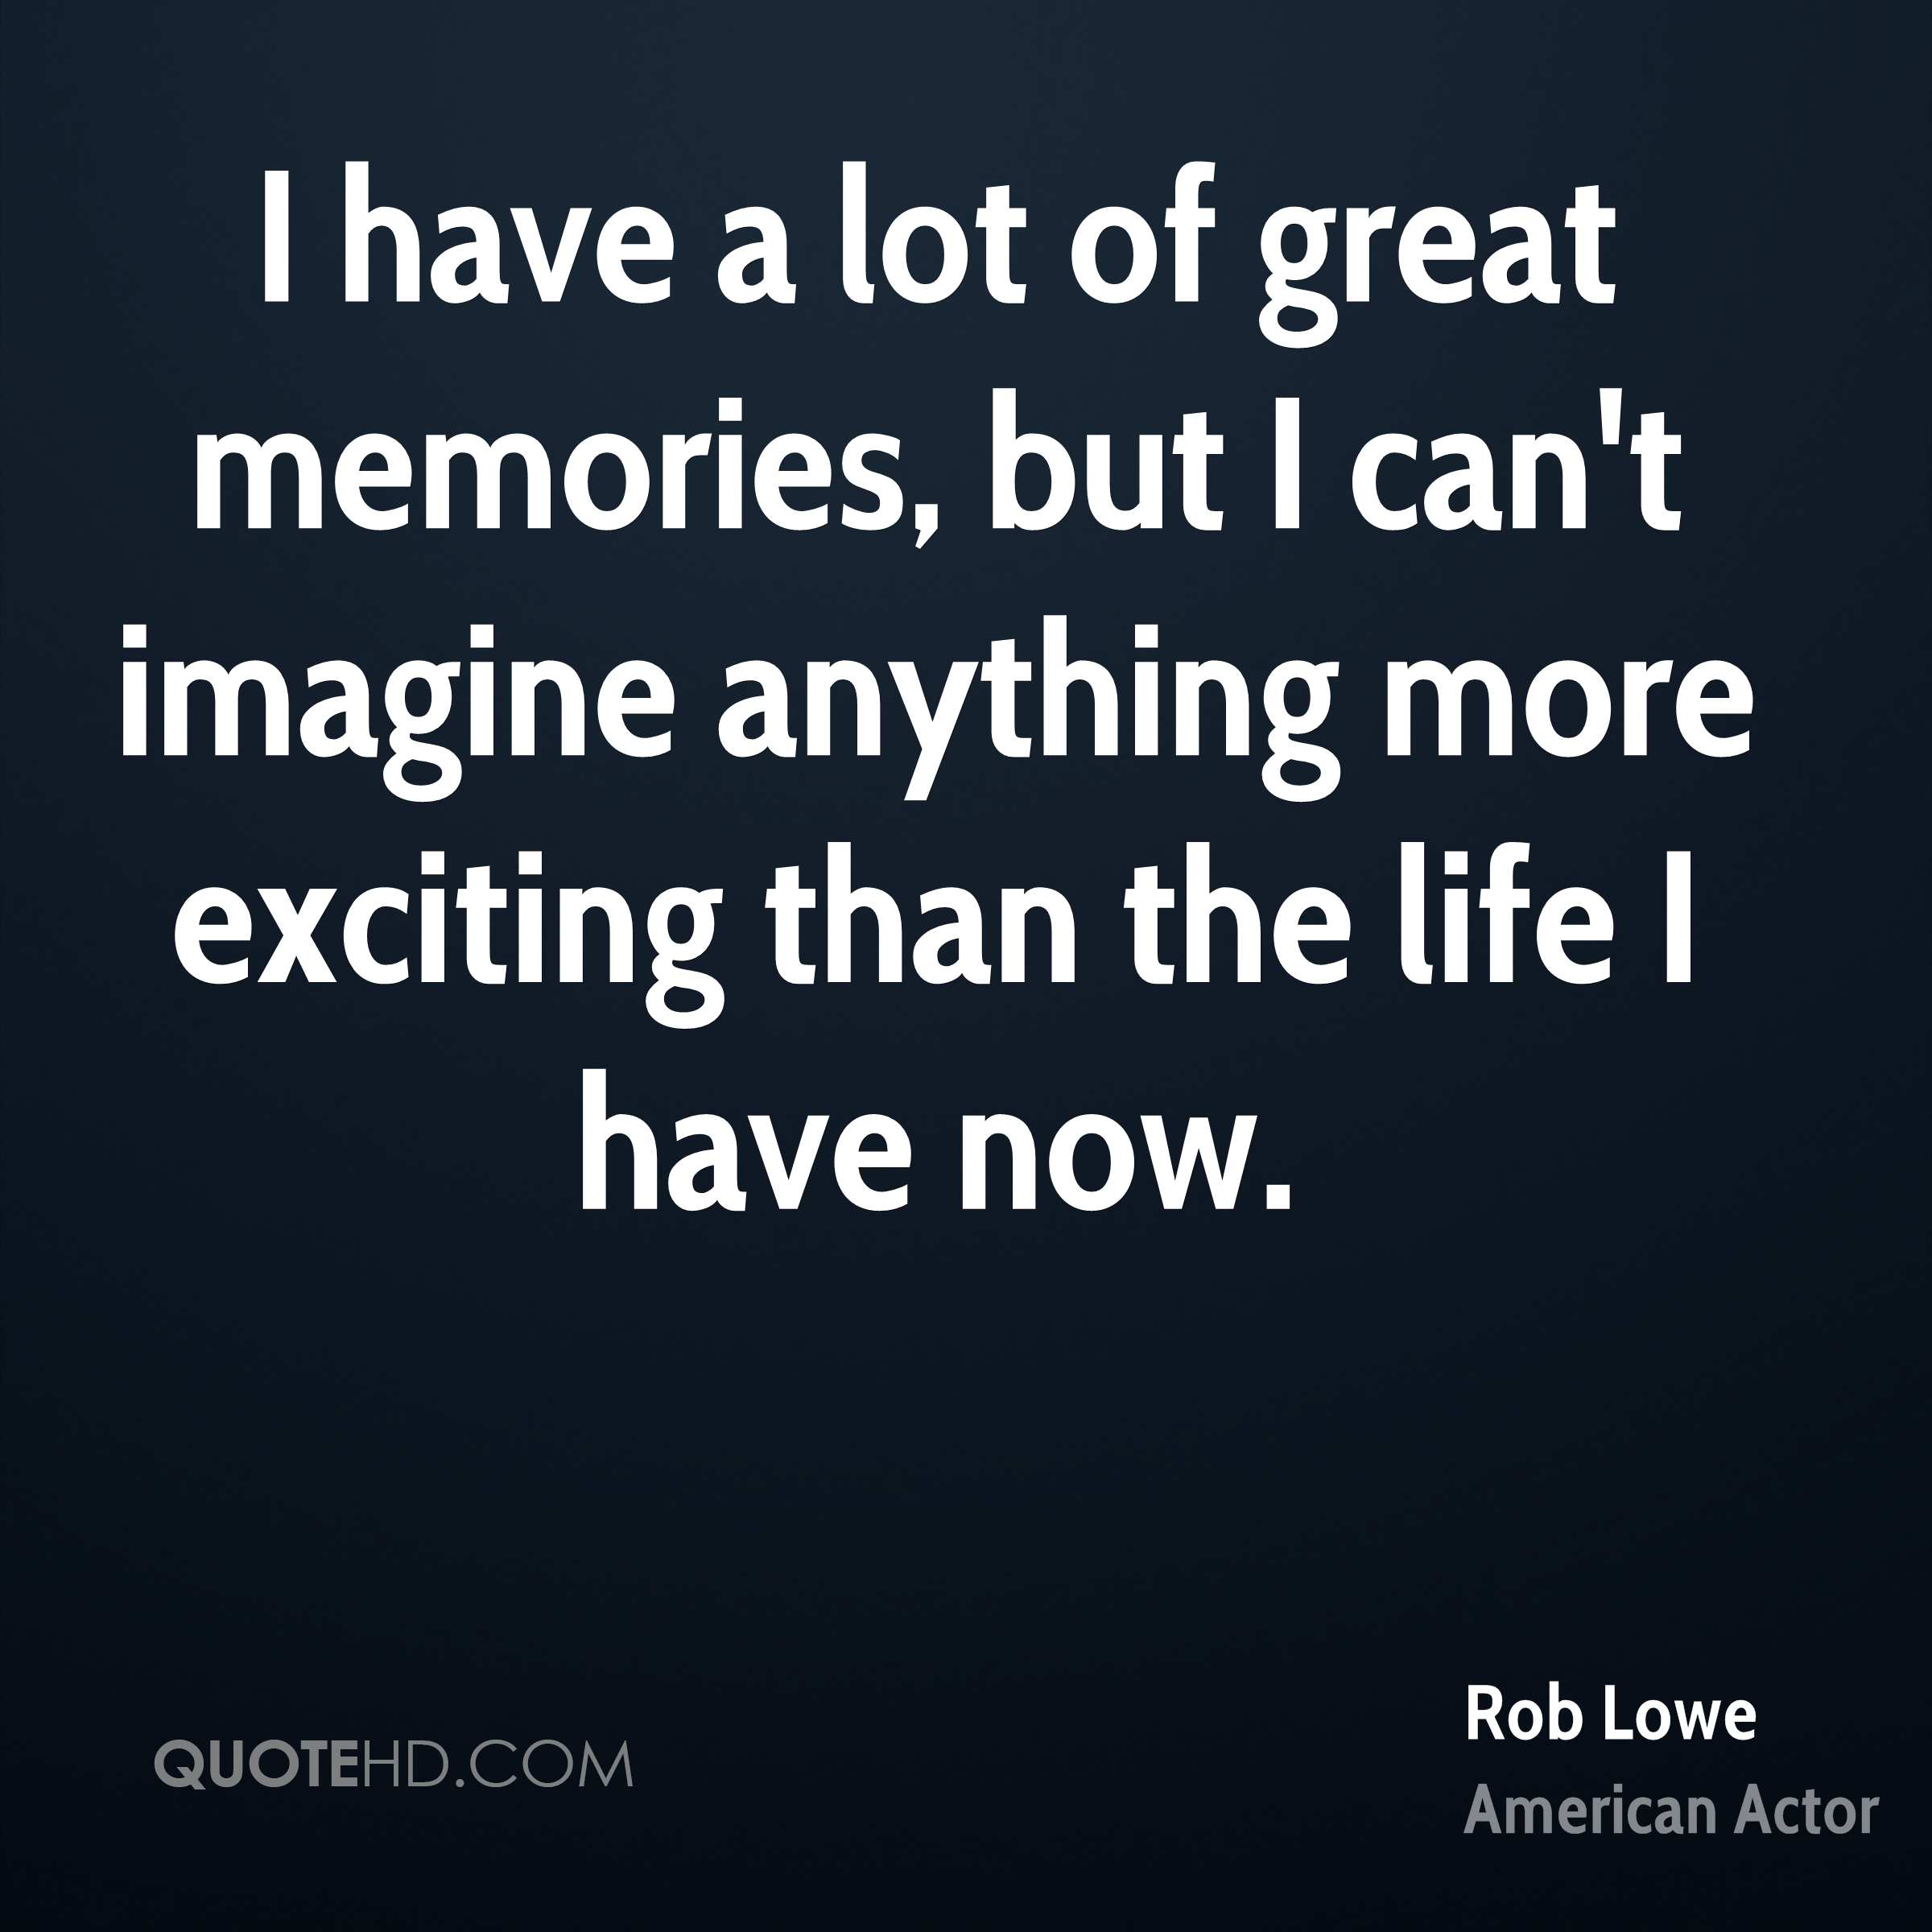 I have a lot of great memories, but I can't imagine anything more exciting than the life I have now.